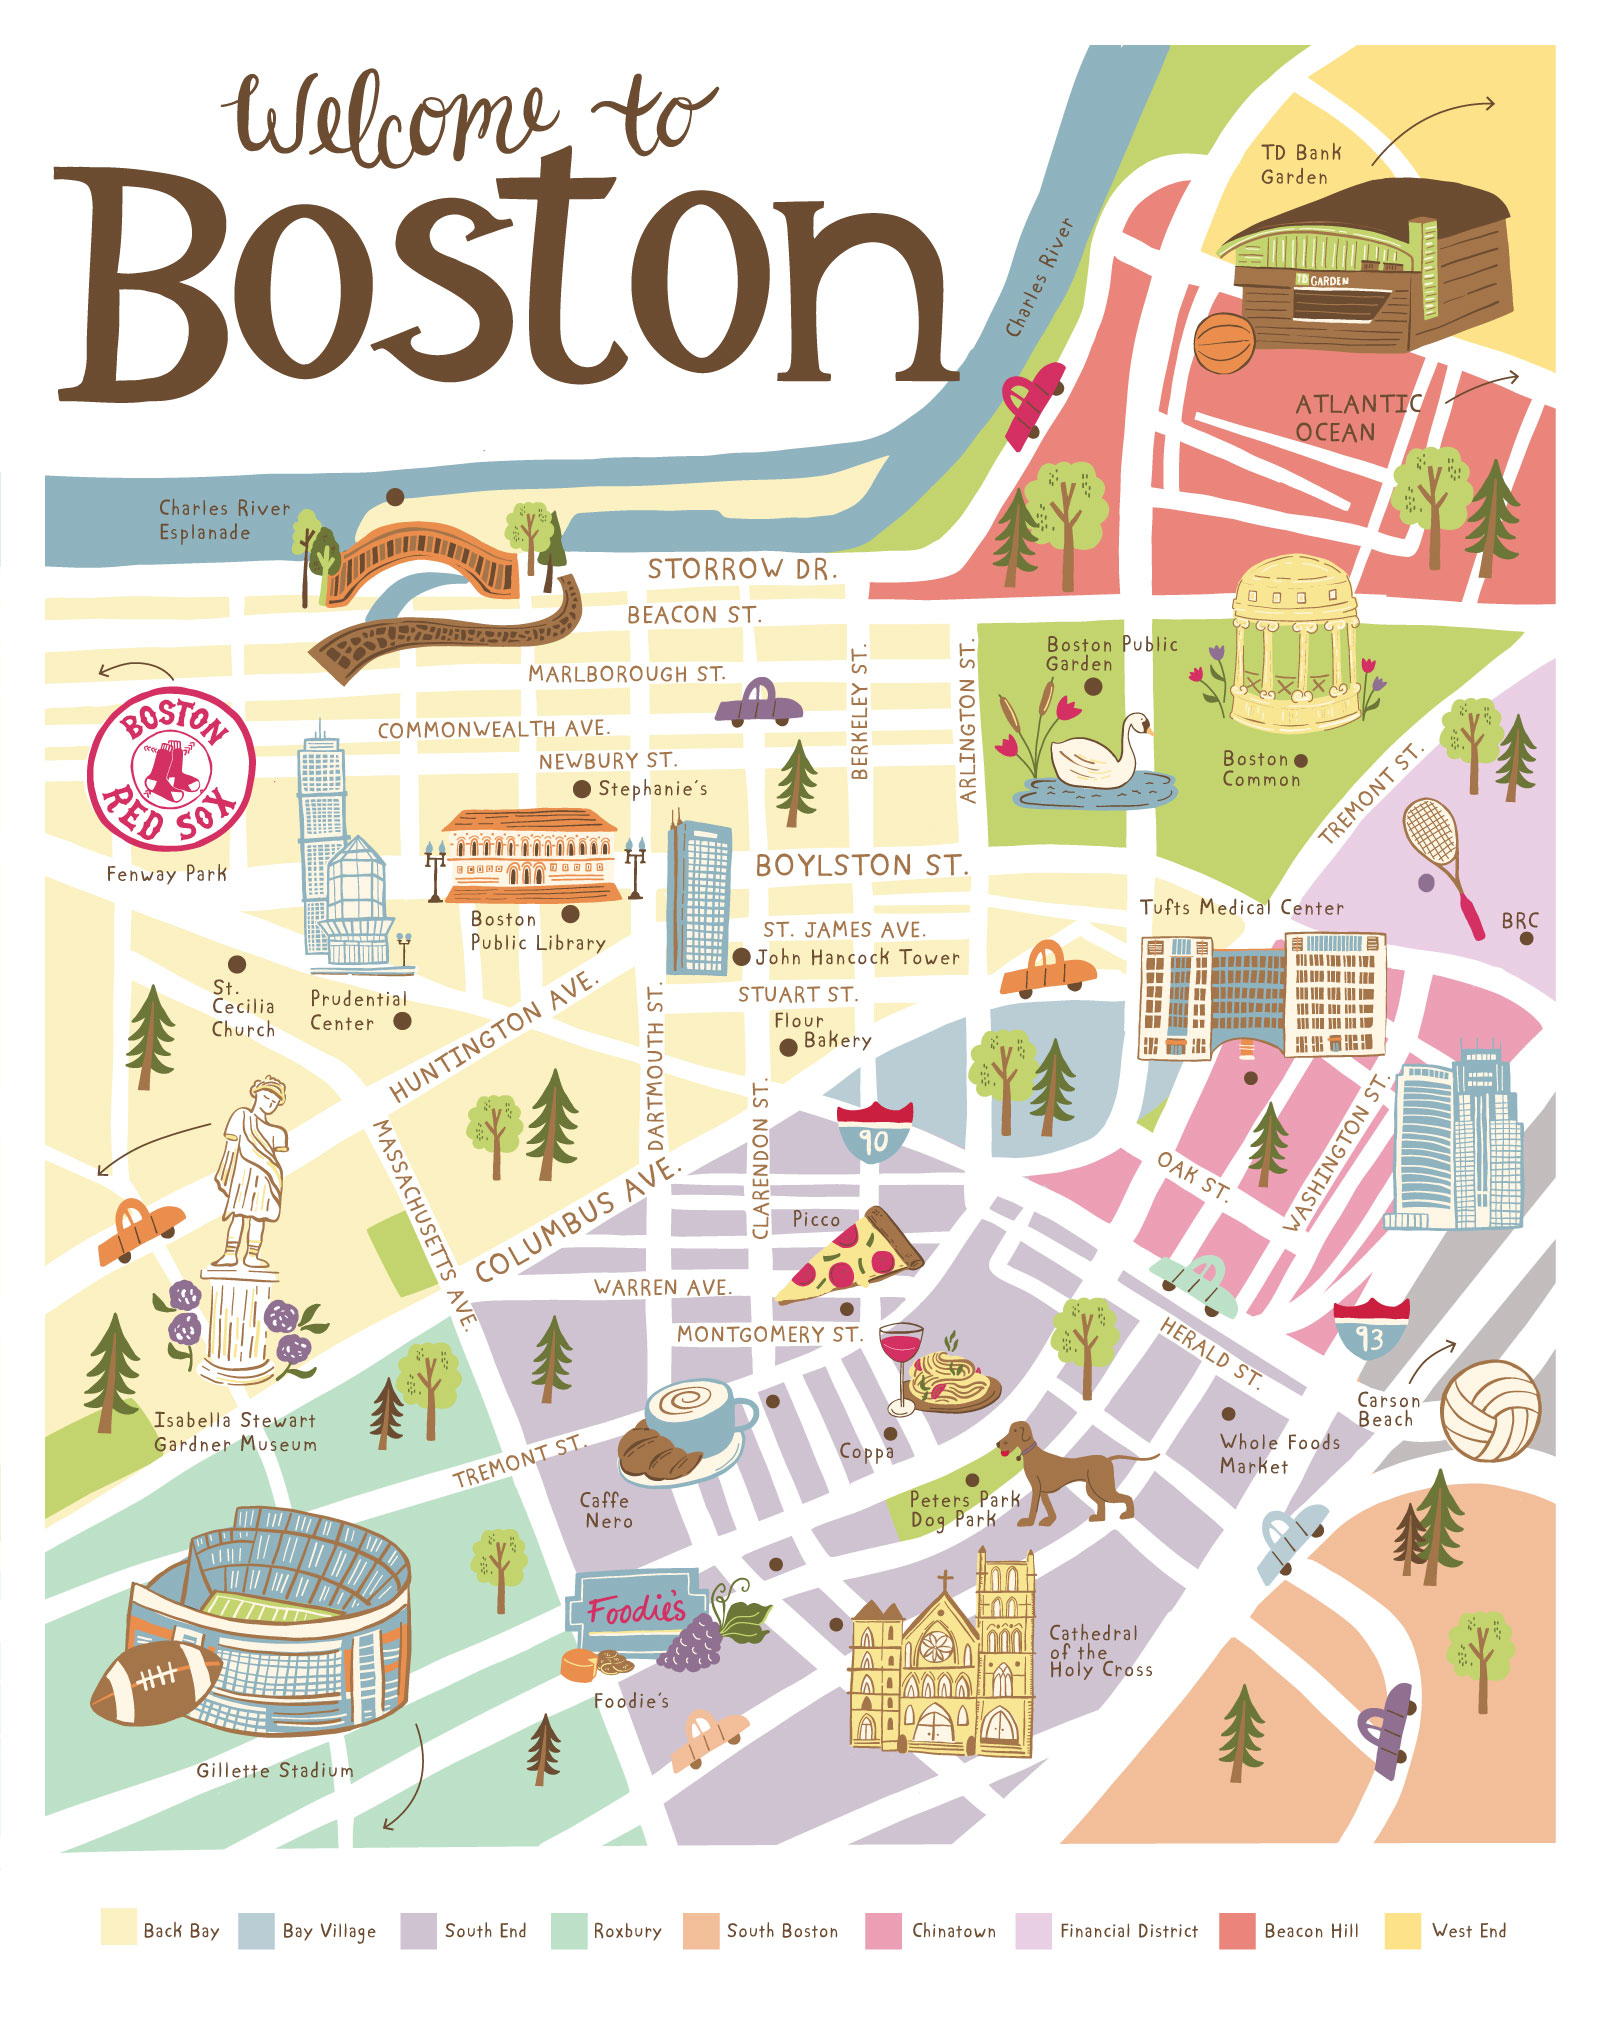 Boston Map — ESTHER LOOPSTRA on massachusetts map, mass map, charles town map, pennsylvania map, ma map, lexington map, michigan map, u.s. state map, freedom trail map, ny map, usa map, fenway park map, texas map, new england map, phoenix map, mississippi map, america map, philly map, cambridge map, united states map,